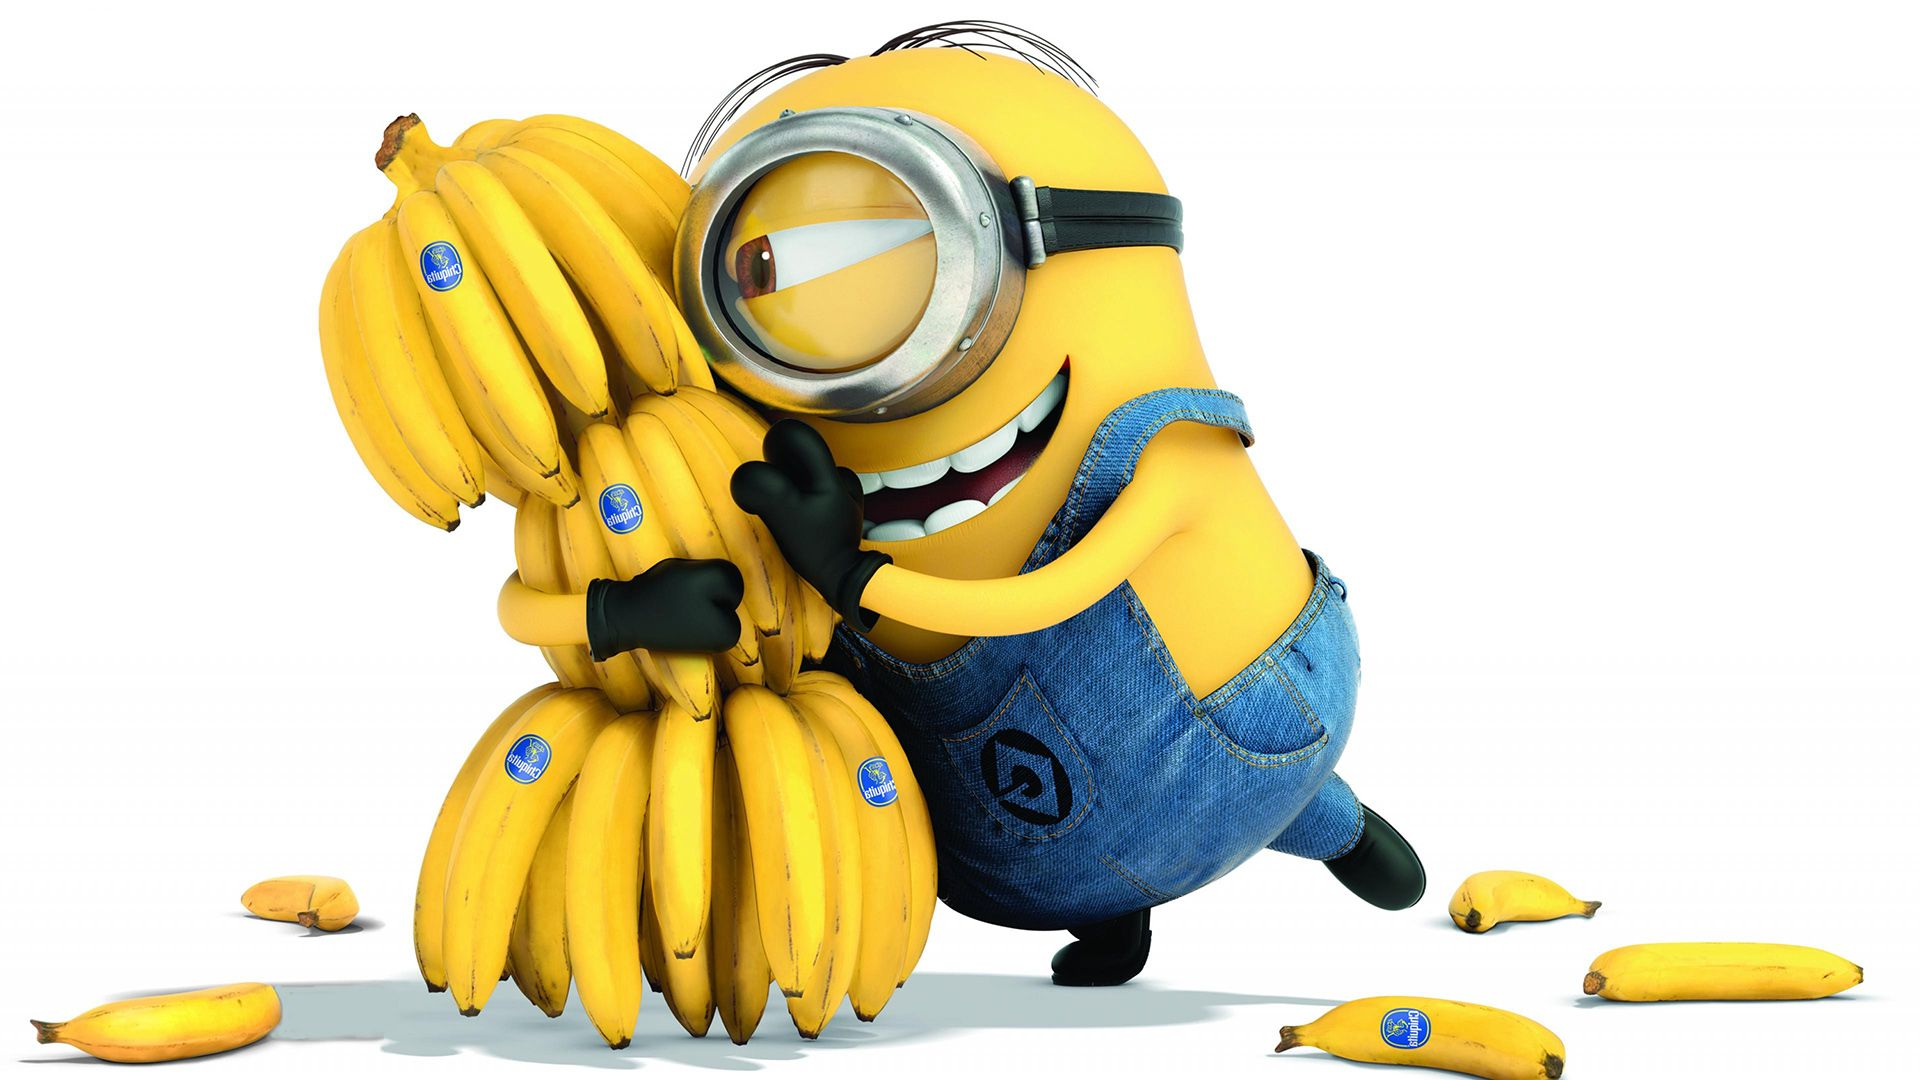 minions movie hd wallpapers - hd wallpapers backgrounds of your